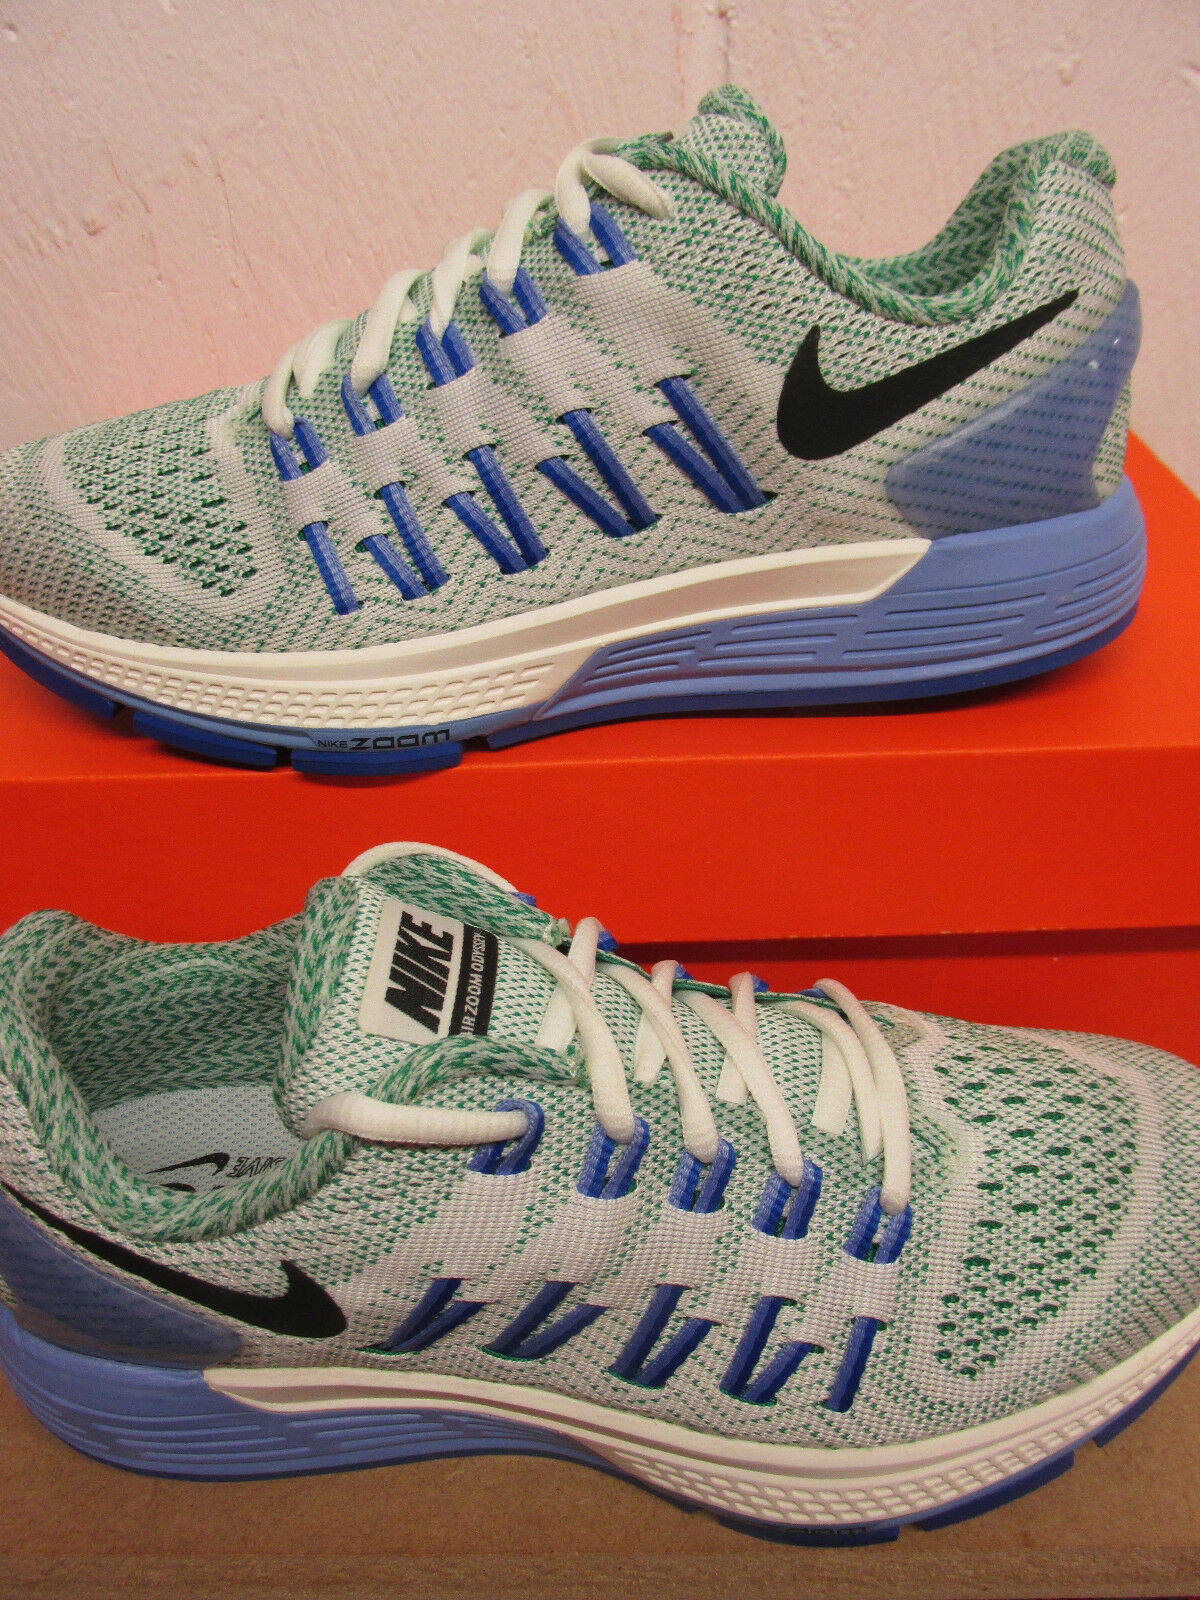 Nike Womens Air Zoom Odyssey Running Trainers 749339 101 Sneakers Shoes